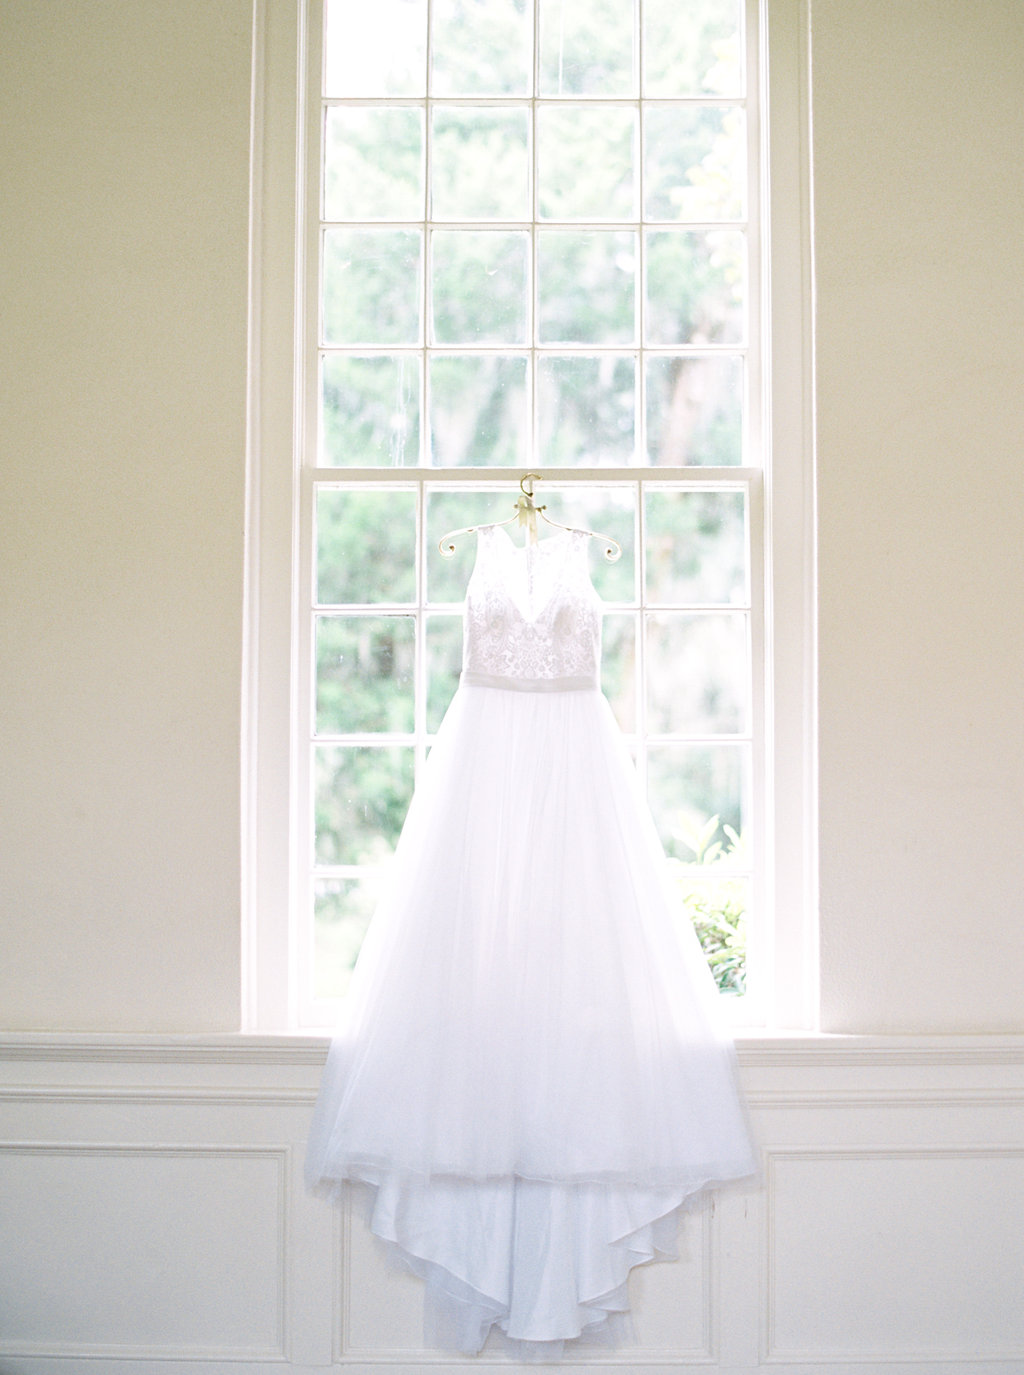 the-happy-bloom-photography-ivory-and-beau-wedding-planning-ivory-and-beau-bridal-boutique-whitfield-chapel-wedding-10-downing-wedding-savannah-wedding-historic-savannah-wedding-savannah-wedding-planner-savannah-weddings-a-to-zinnias-1.jpg